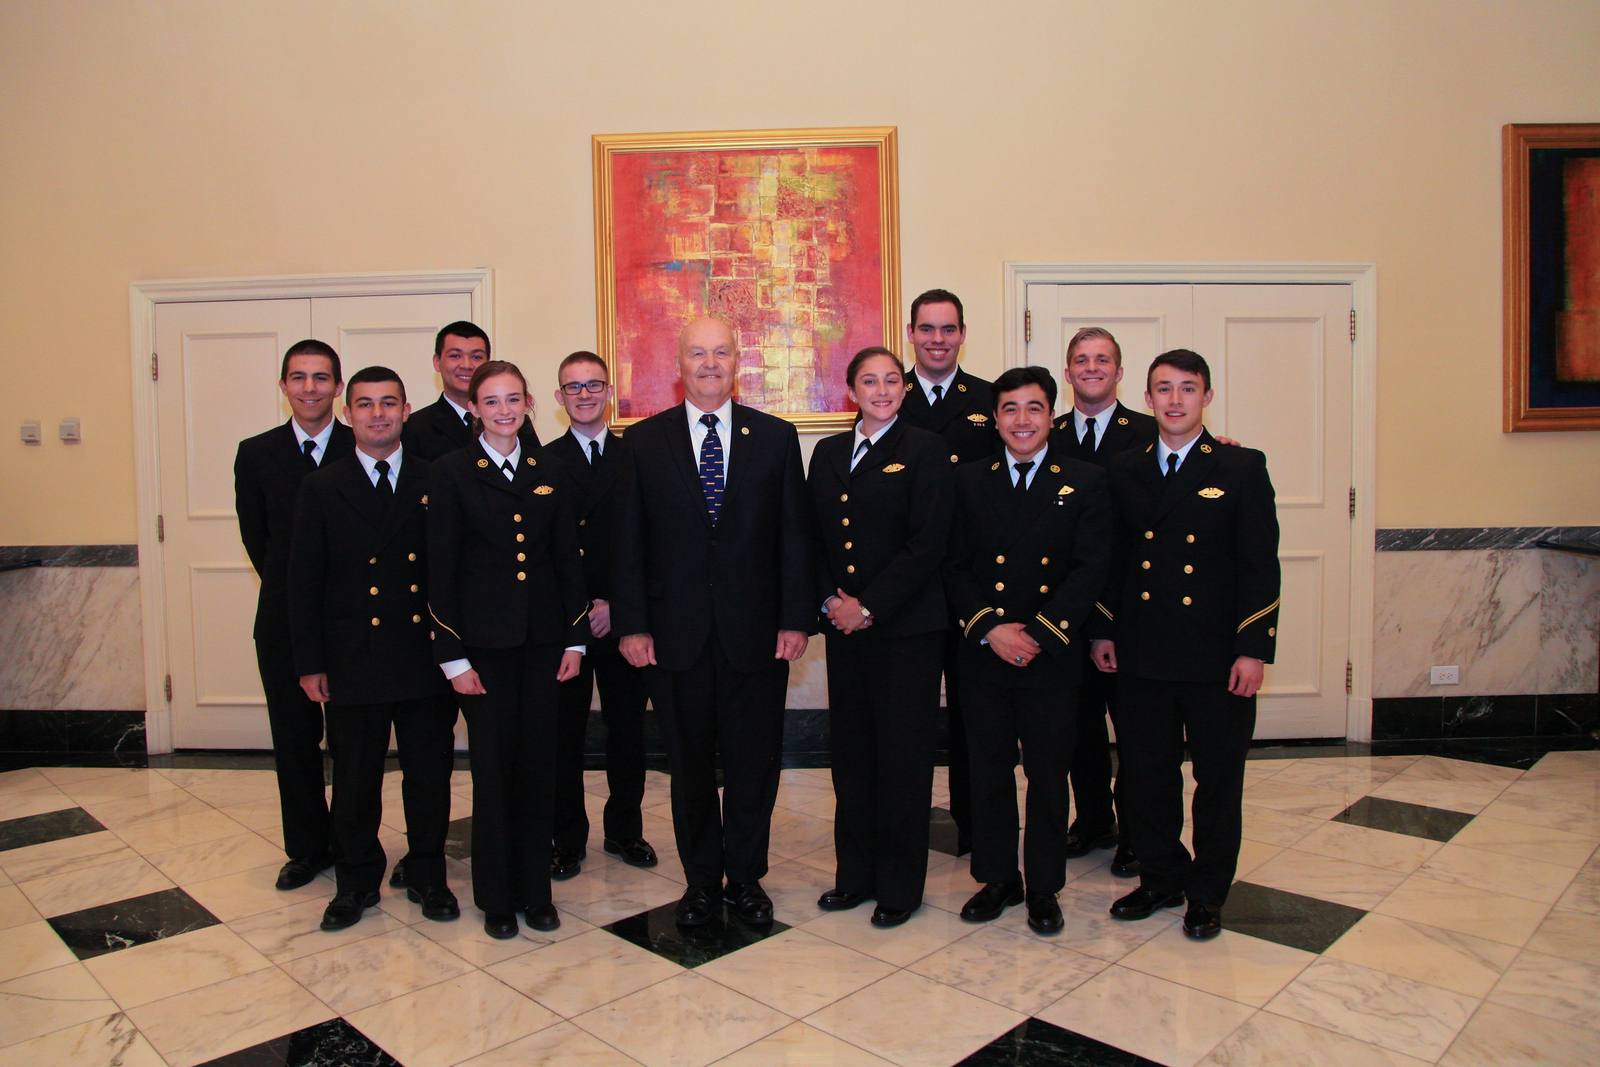 Kings Point Glee Club of the United States Merchant Marine Academy and President Midshipman Shaun Meehan